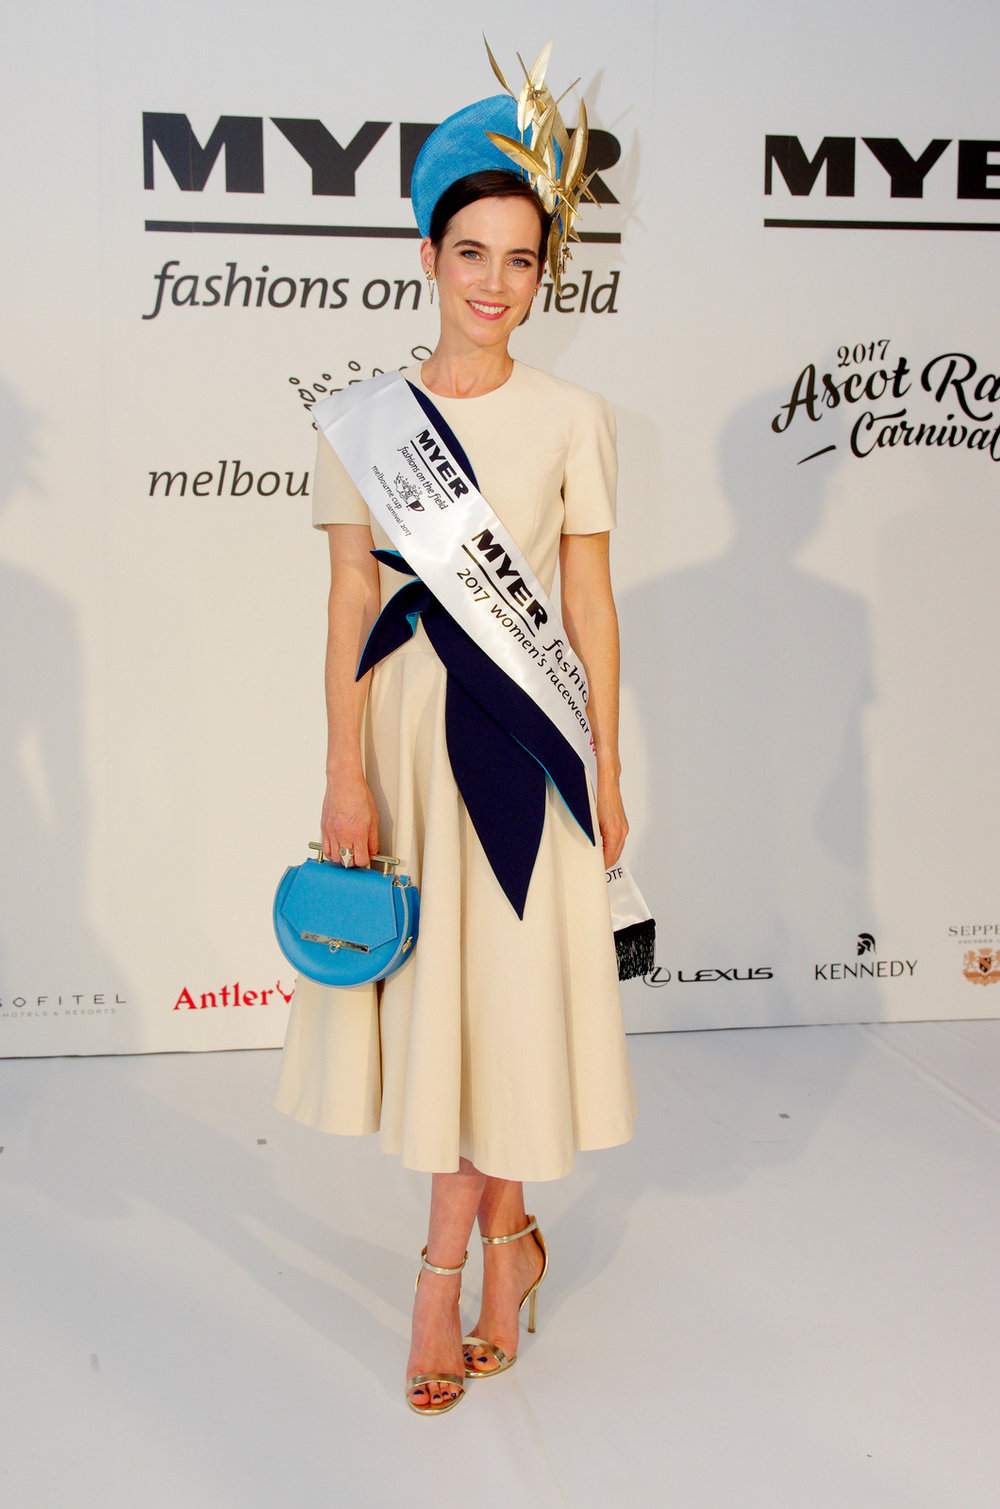 Elizabeth Winlo (Nee Pollard) who won the National Myer FOTF in 2009 looked stunning in this bone coloured linen dress with navy and bright blue detail. Her Millinery is by Reny Kestel and her bag was made in the USA.